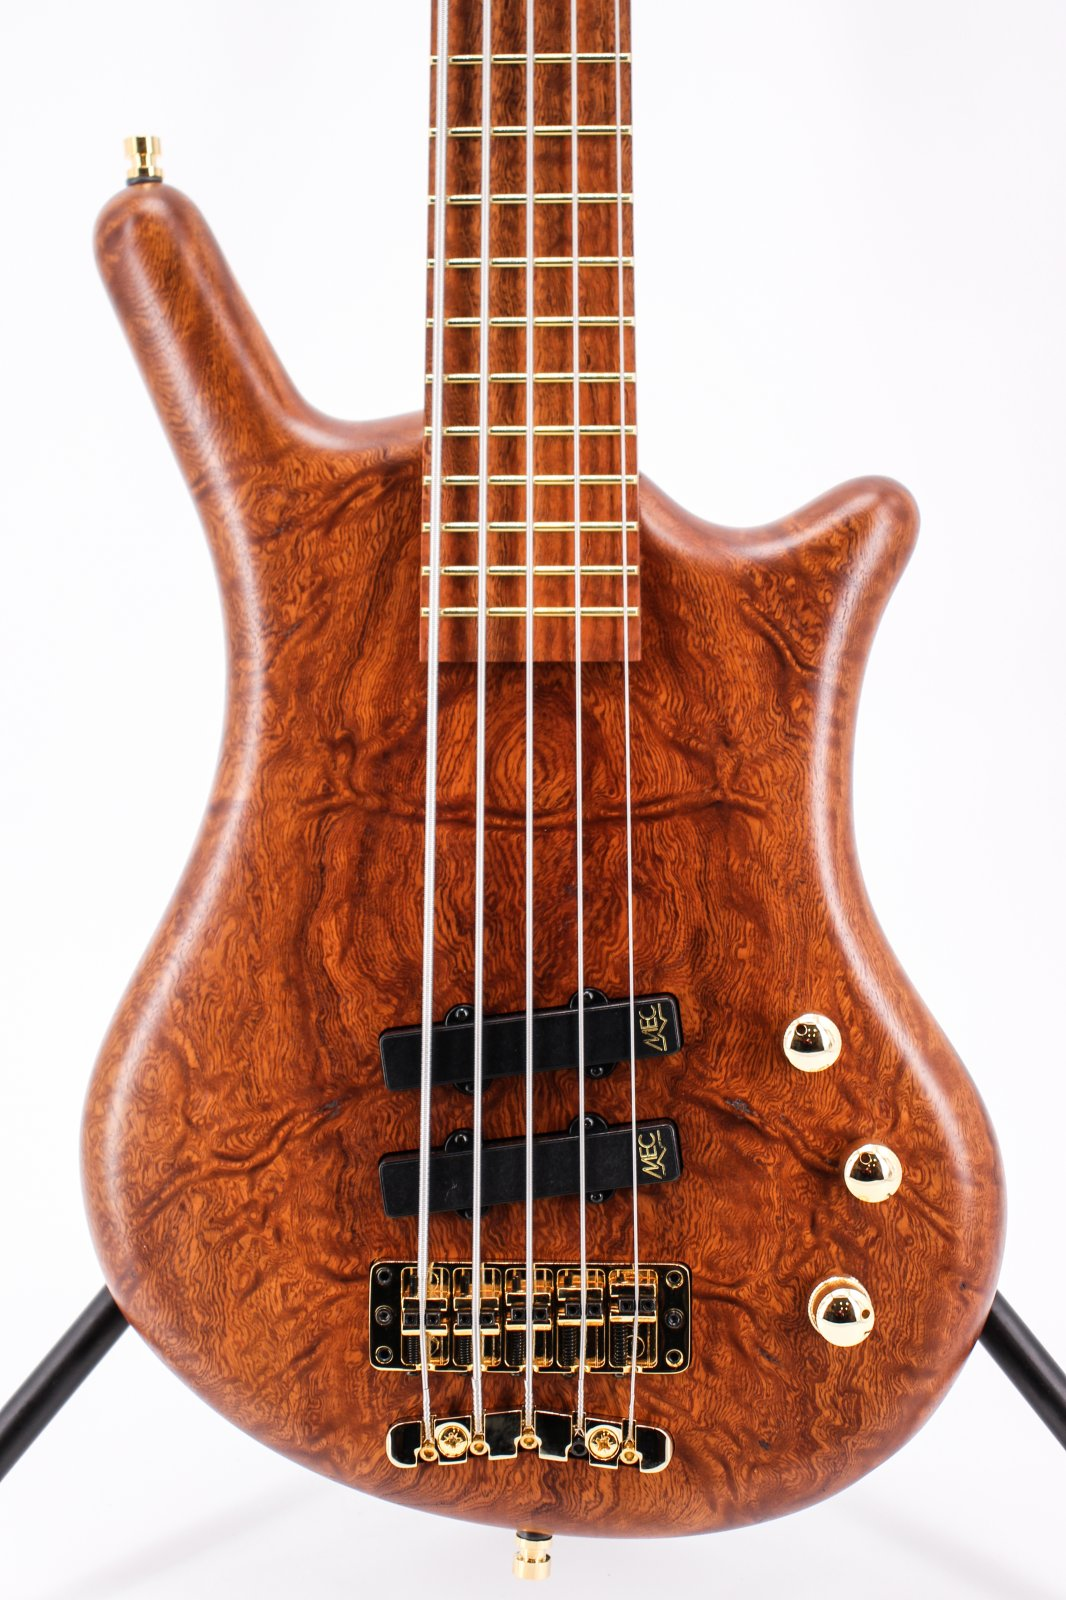 Warwick Pro Series Thumb BO 5-String LTD Burled Mahogany Gold Hardware Bass